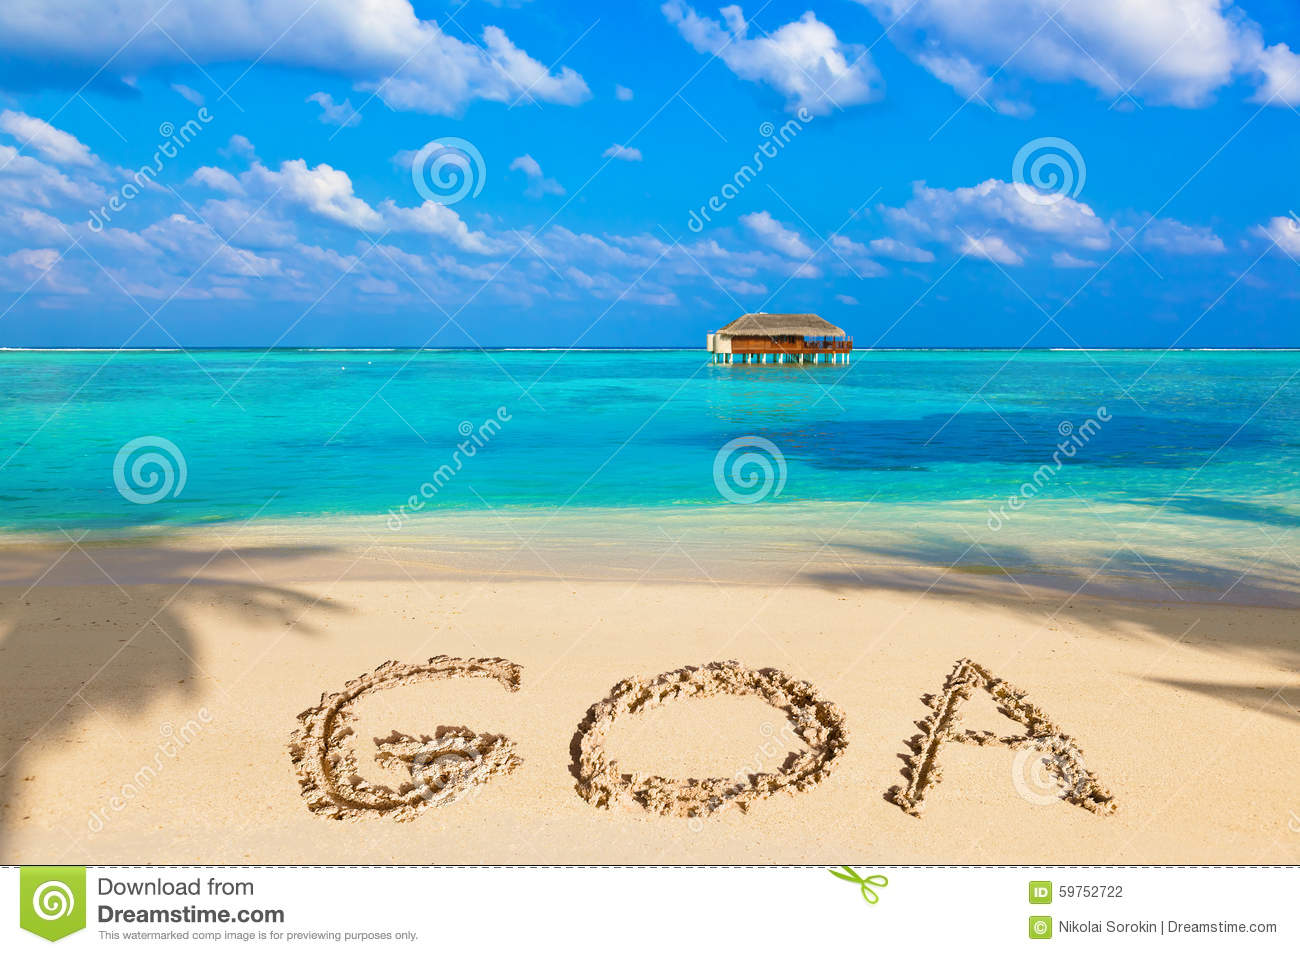 Goa Beach Photo Clipart.